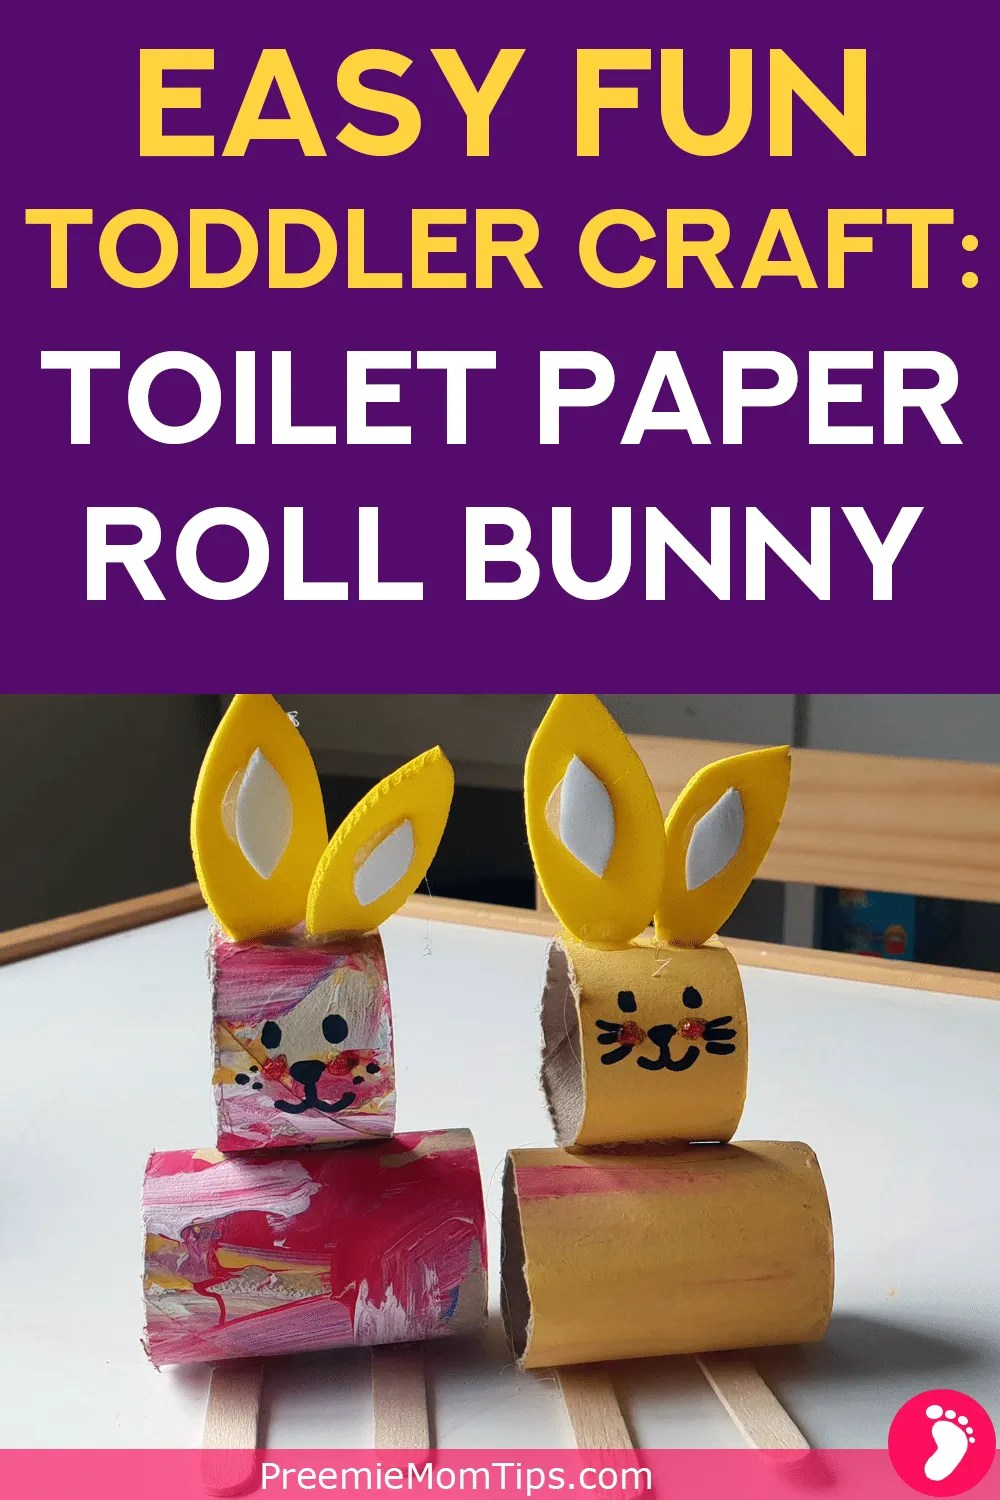 Got 5 minutes, a spare toilet paper roll and a bored toddler? This bunny toilet paper roll craft is perfect to keep your little one inspired!